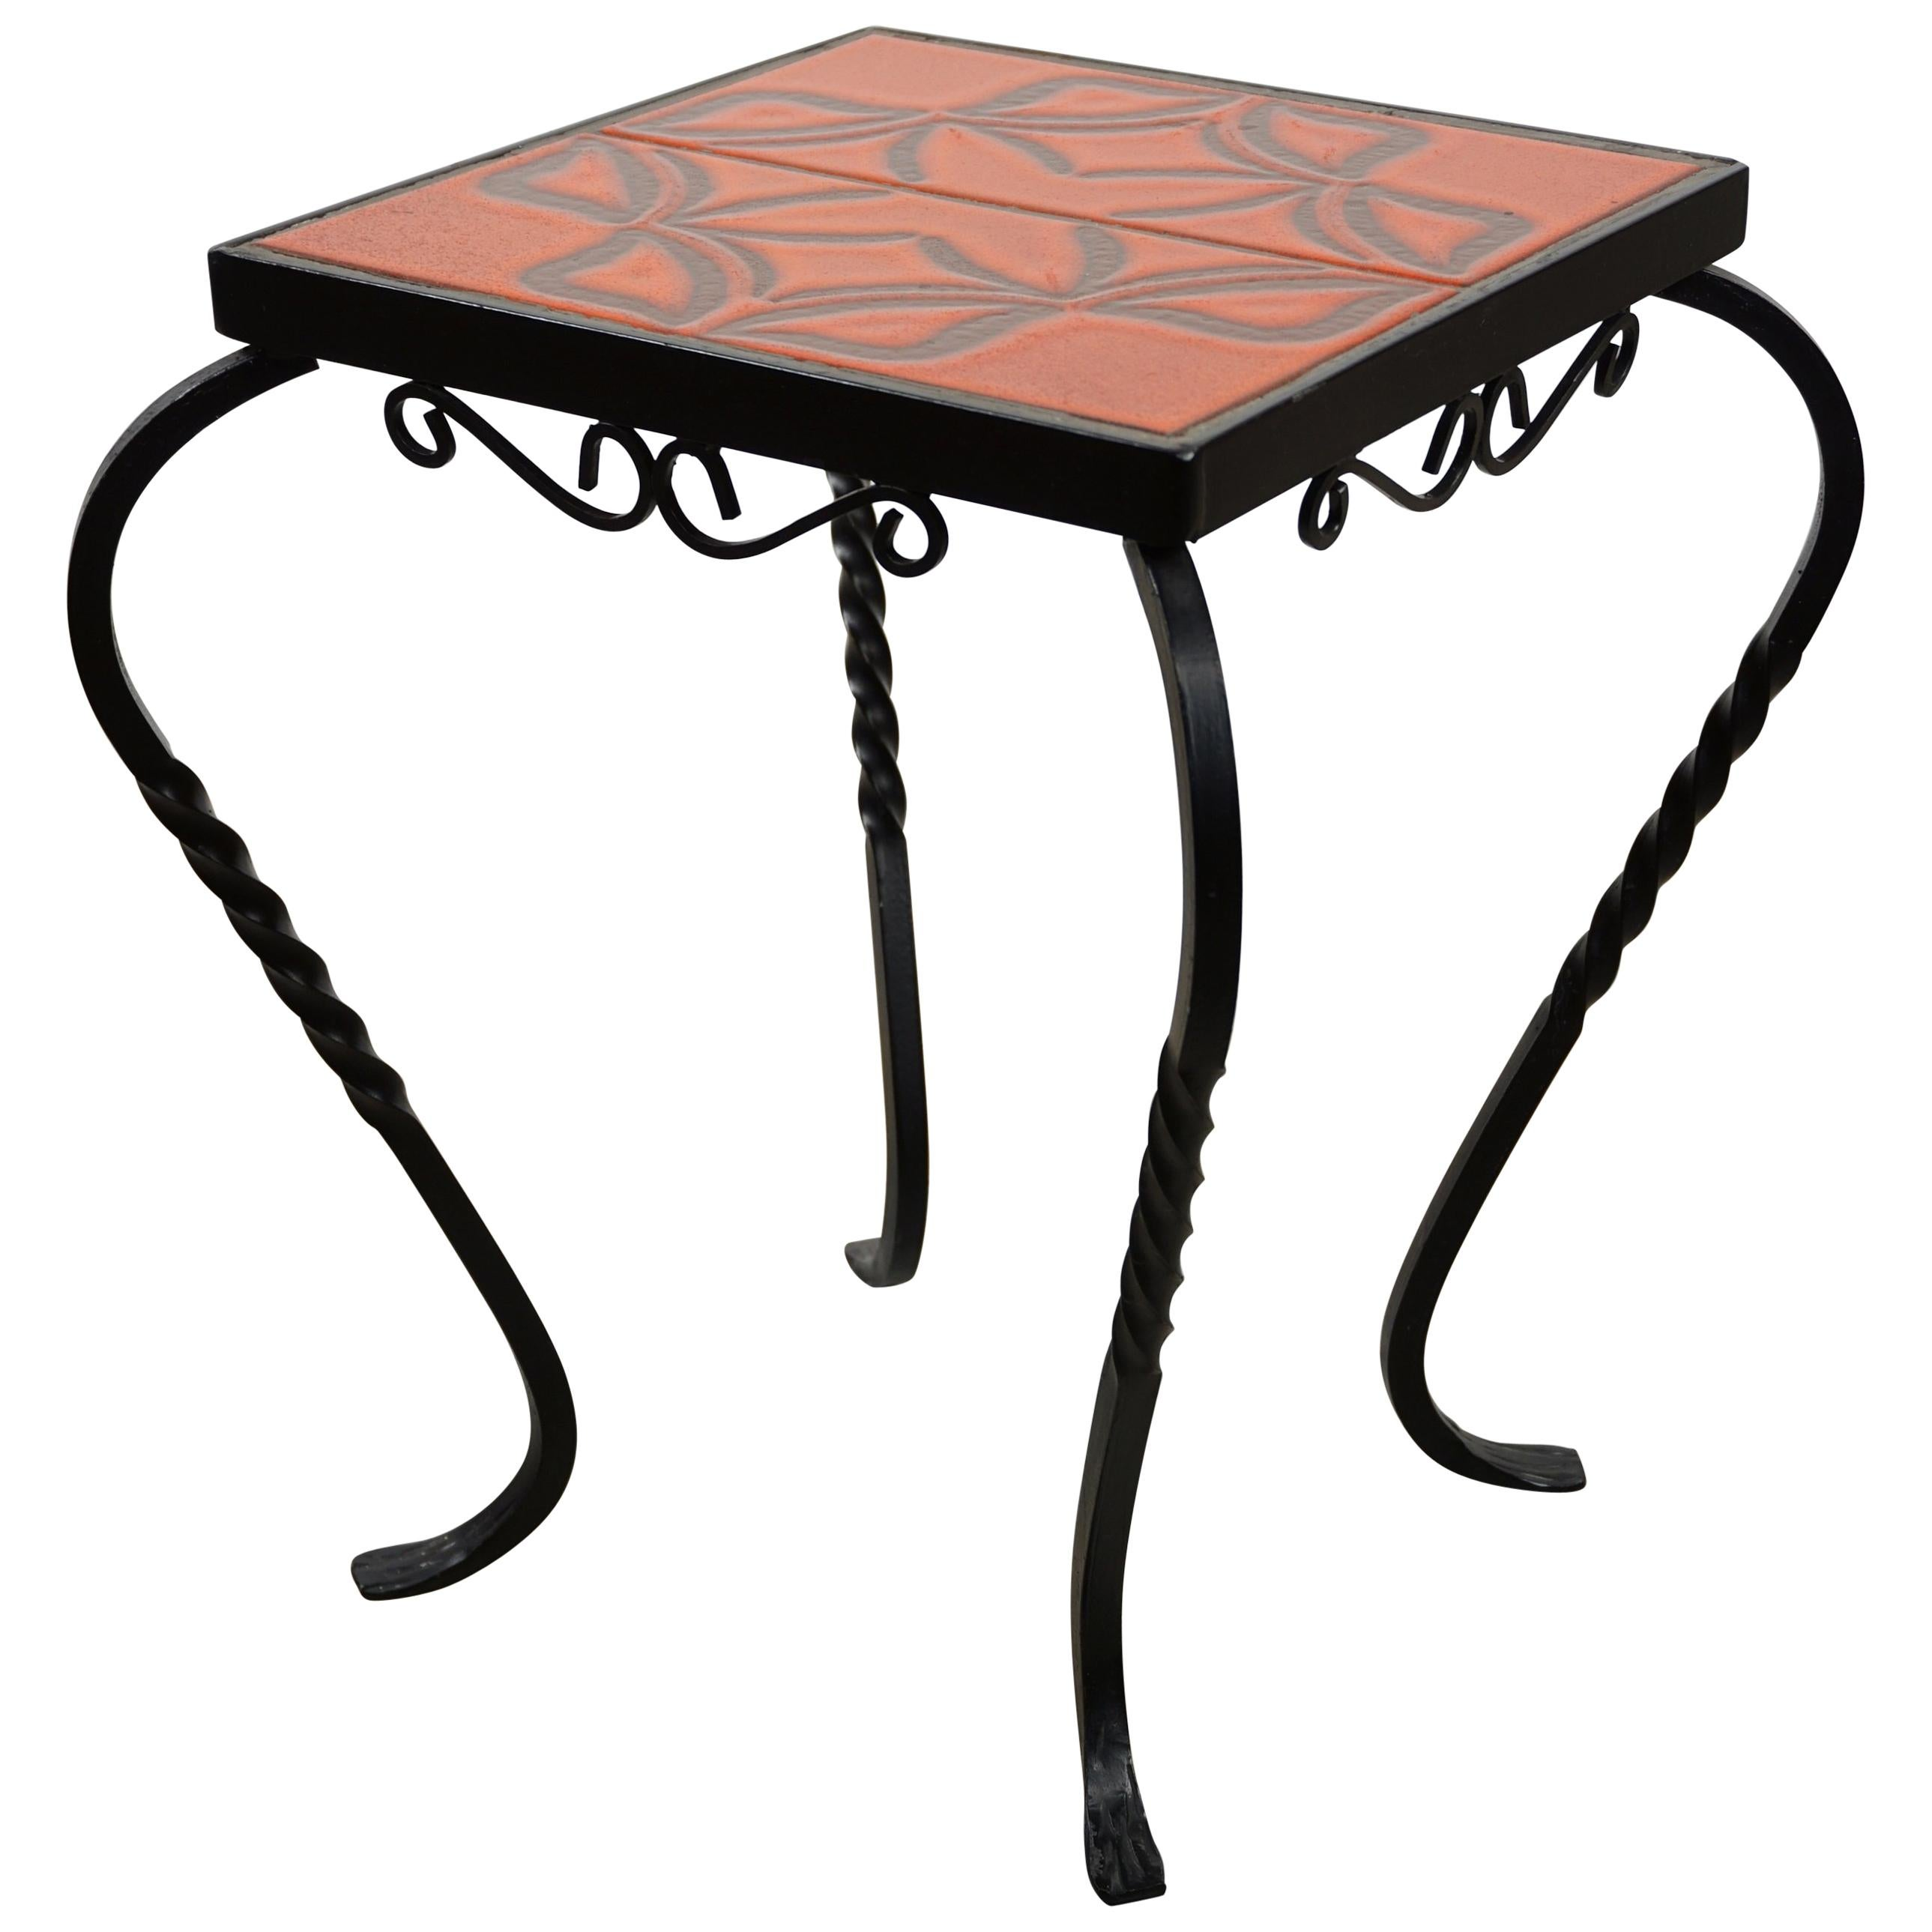 Delicieux French Design Wrought Iron And Ceramic Side Table